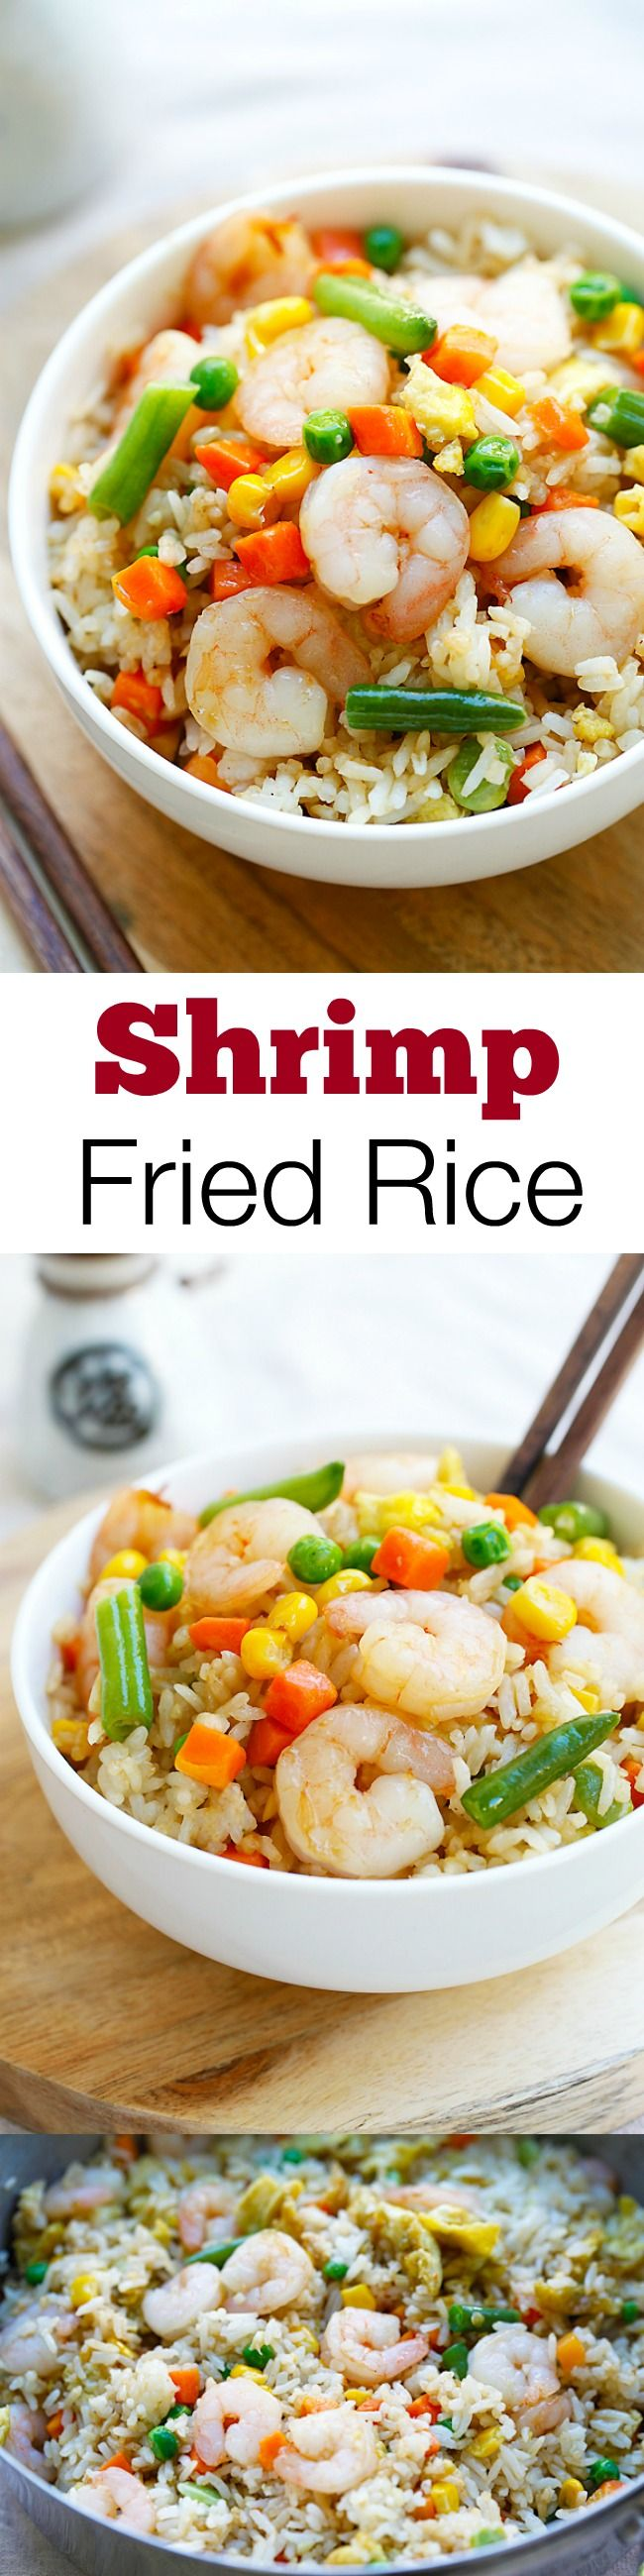 Shrimp fried rice – the easiest shrimp fried rice recipe, takes only 20 mins from prep to dinner table. Healthier and a zillion times better than takeout   rasamalaysia.com